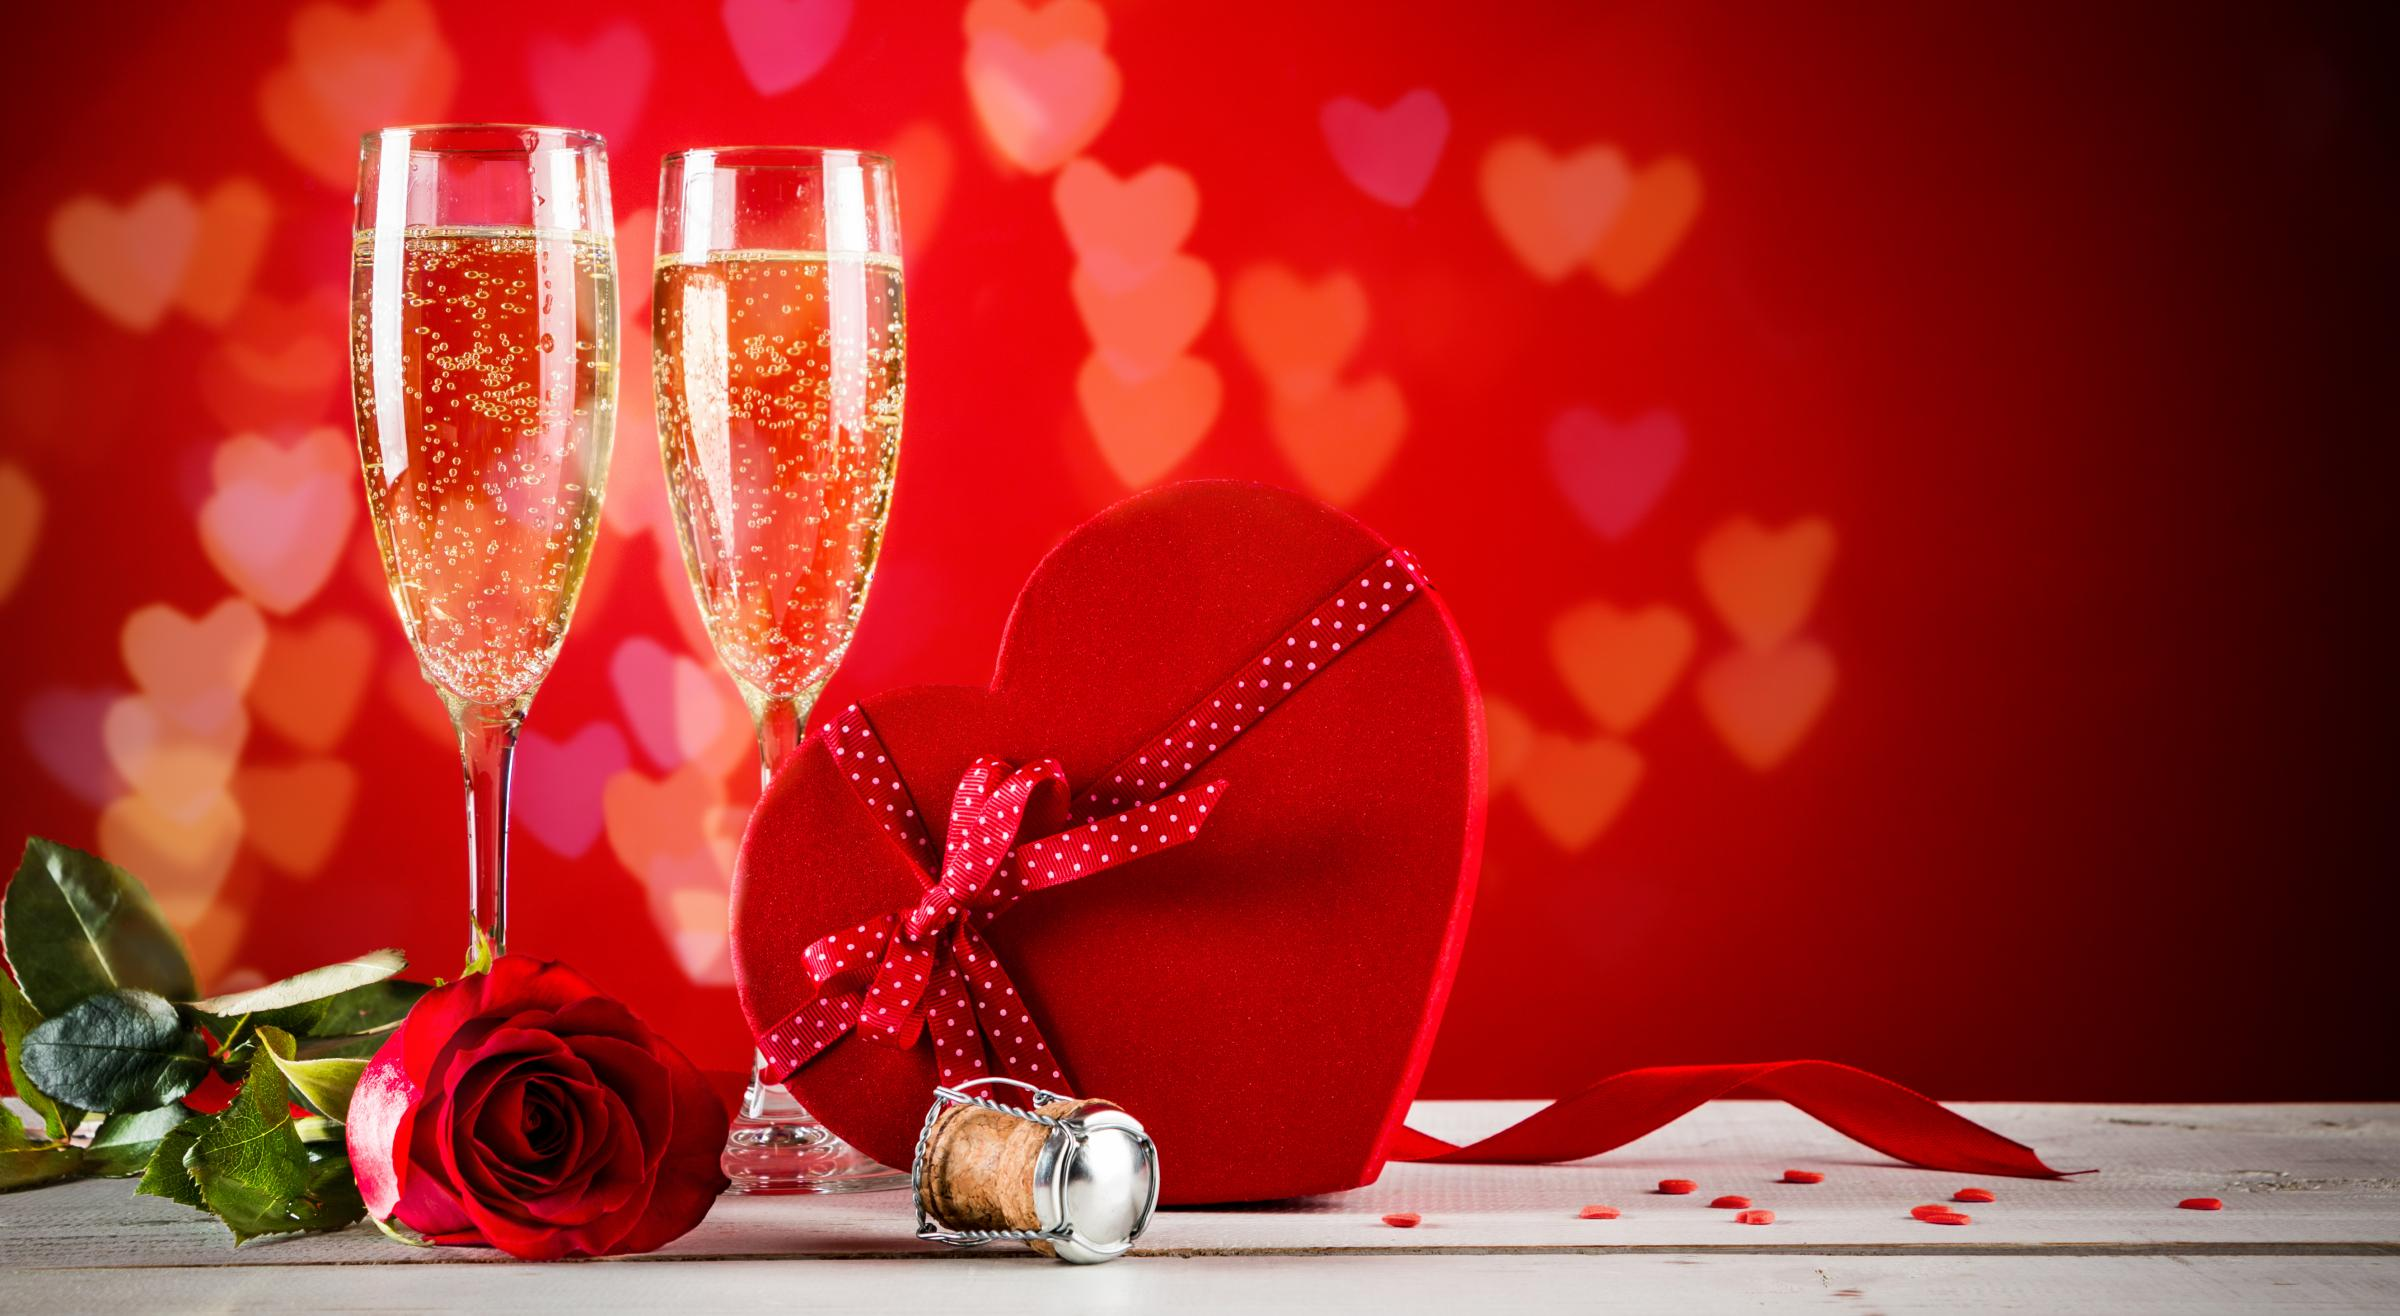 Background of Valentines day celebration with champagne, rose, heart shaped present and red candies..